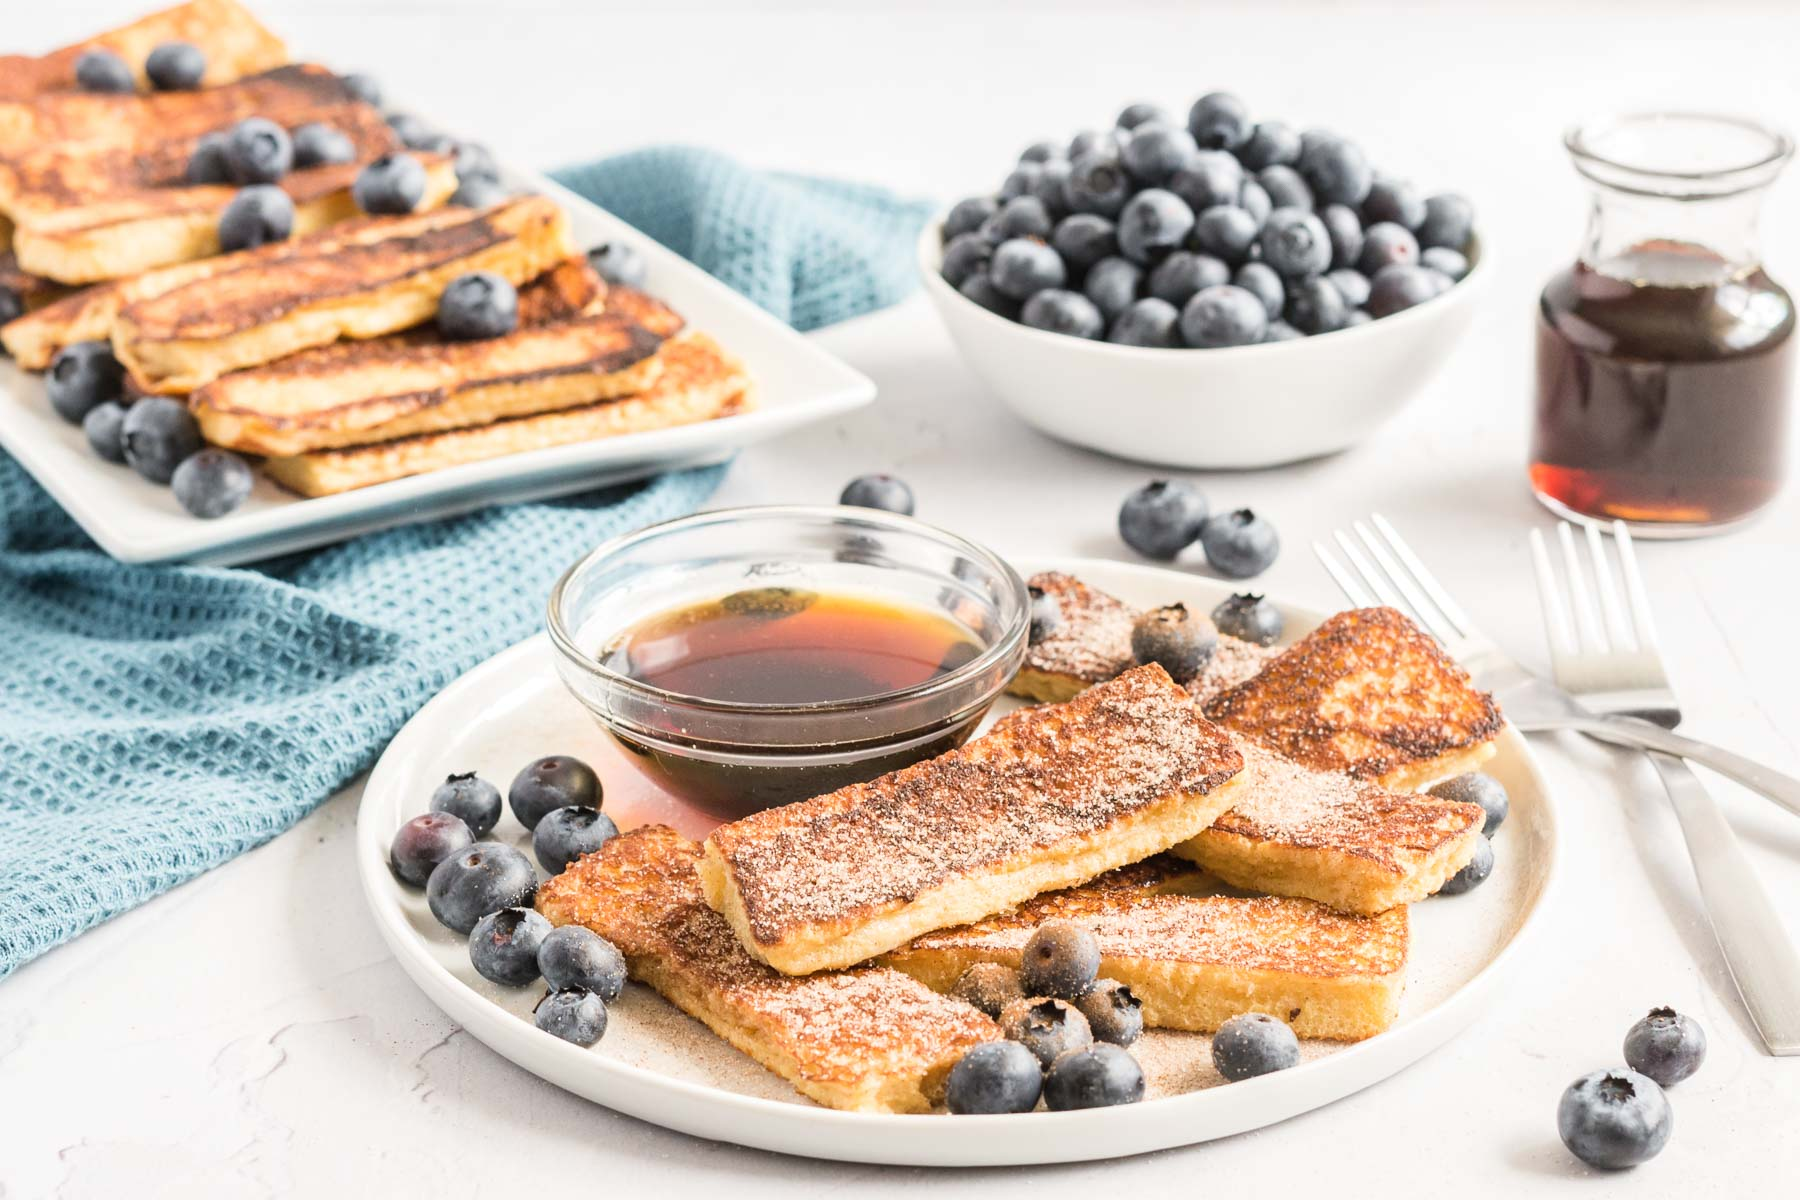 French toast sticks on a plate with a dish of syrup and fresh blueberries.